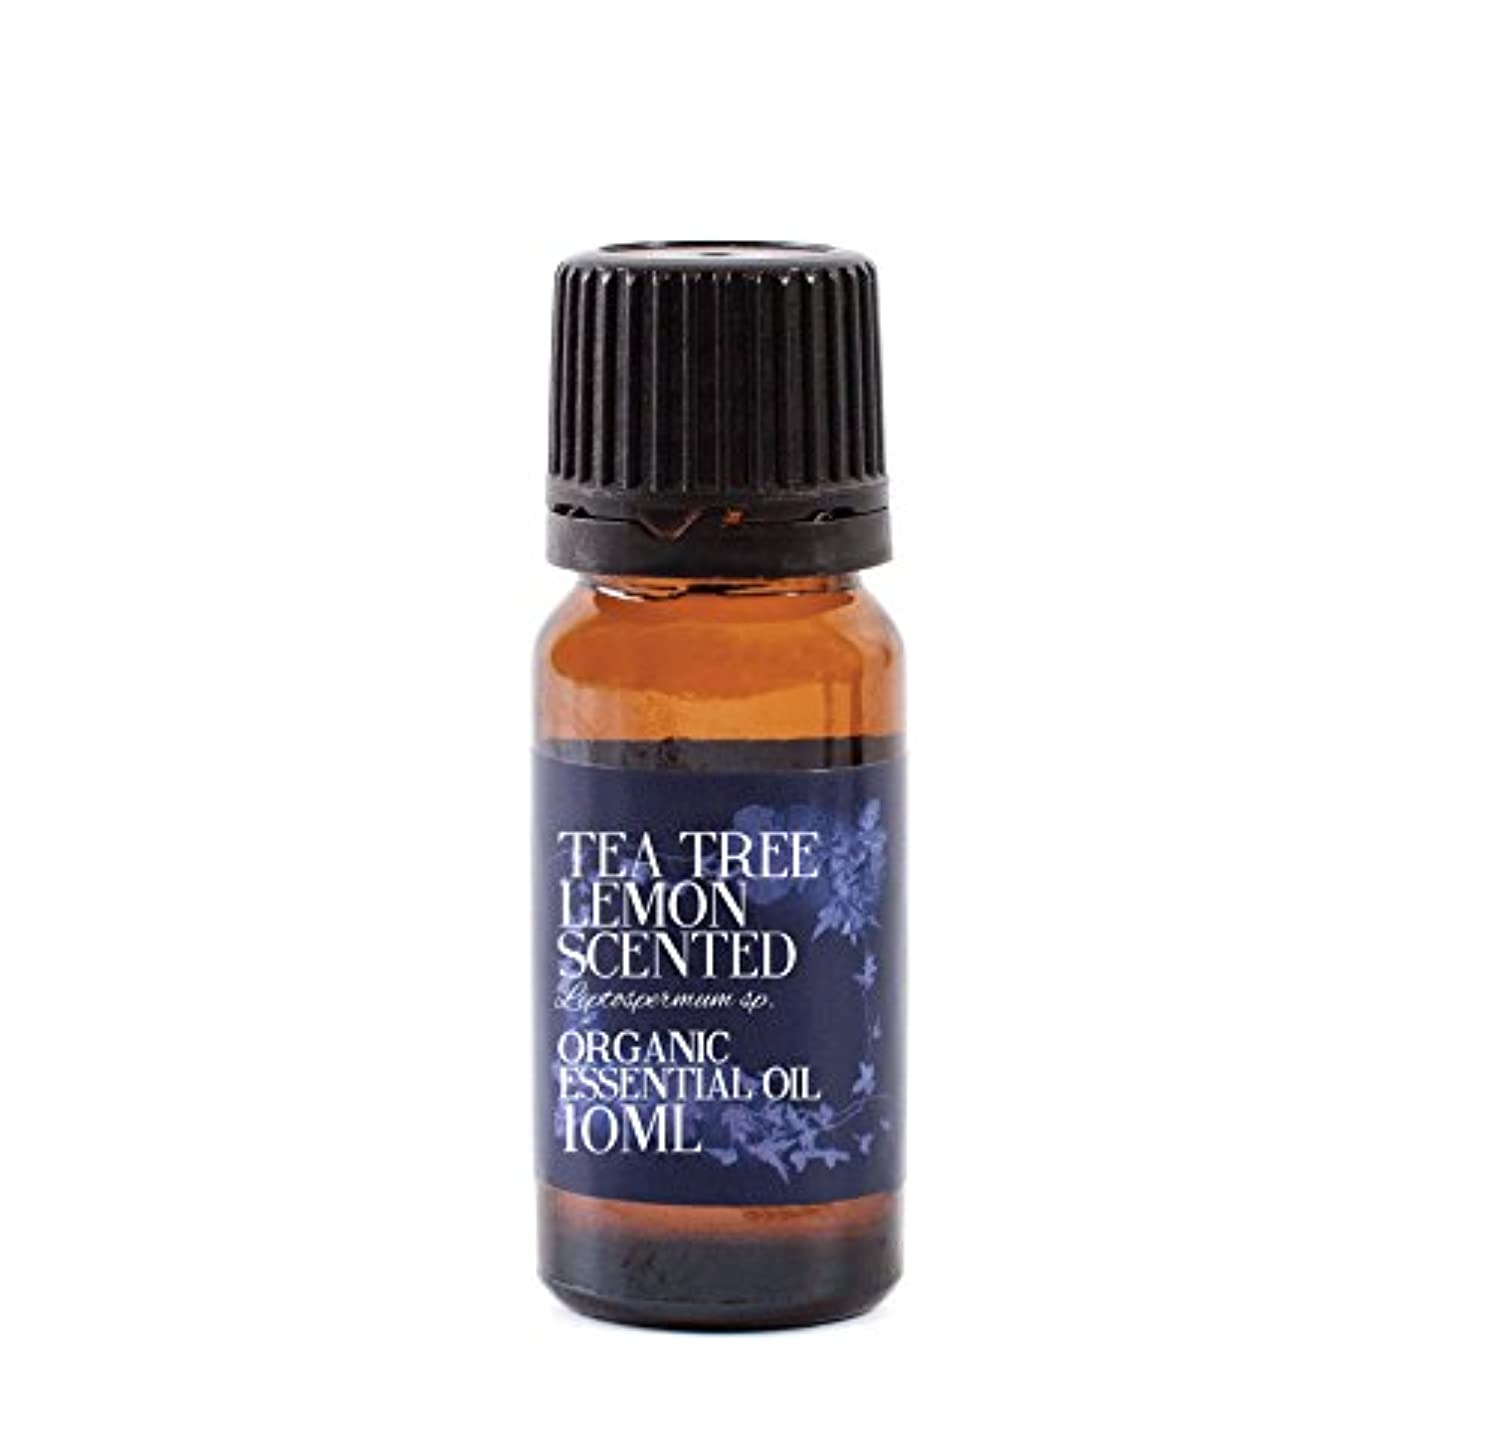 Mystic Moments | Tea Tree Lemon Scented Organic Essential Oil - 10ml - 100% Pure